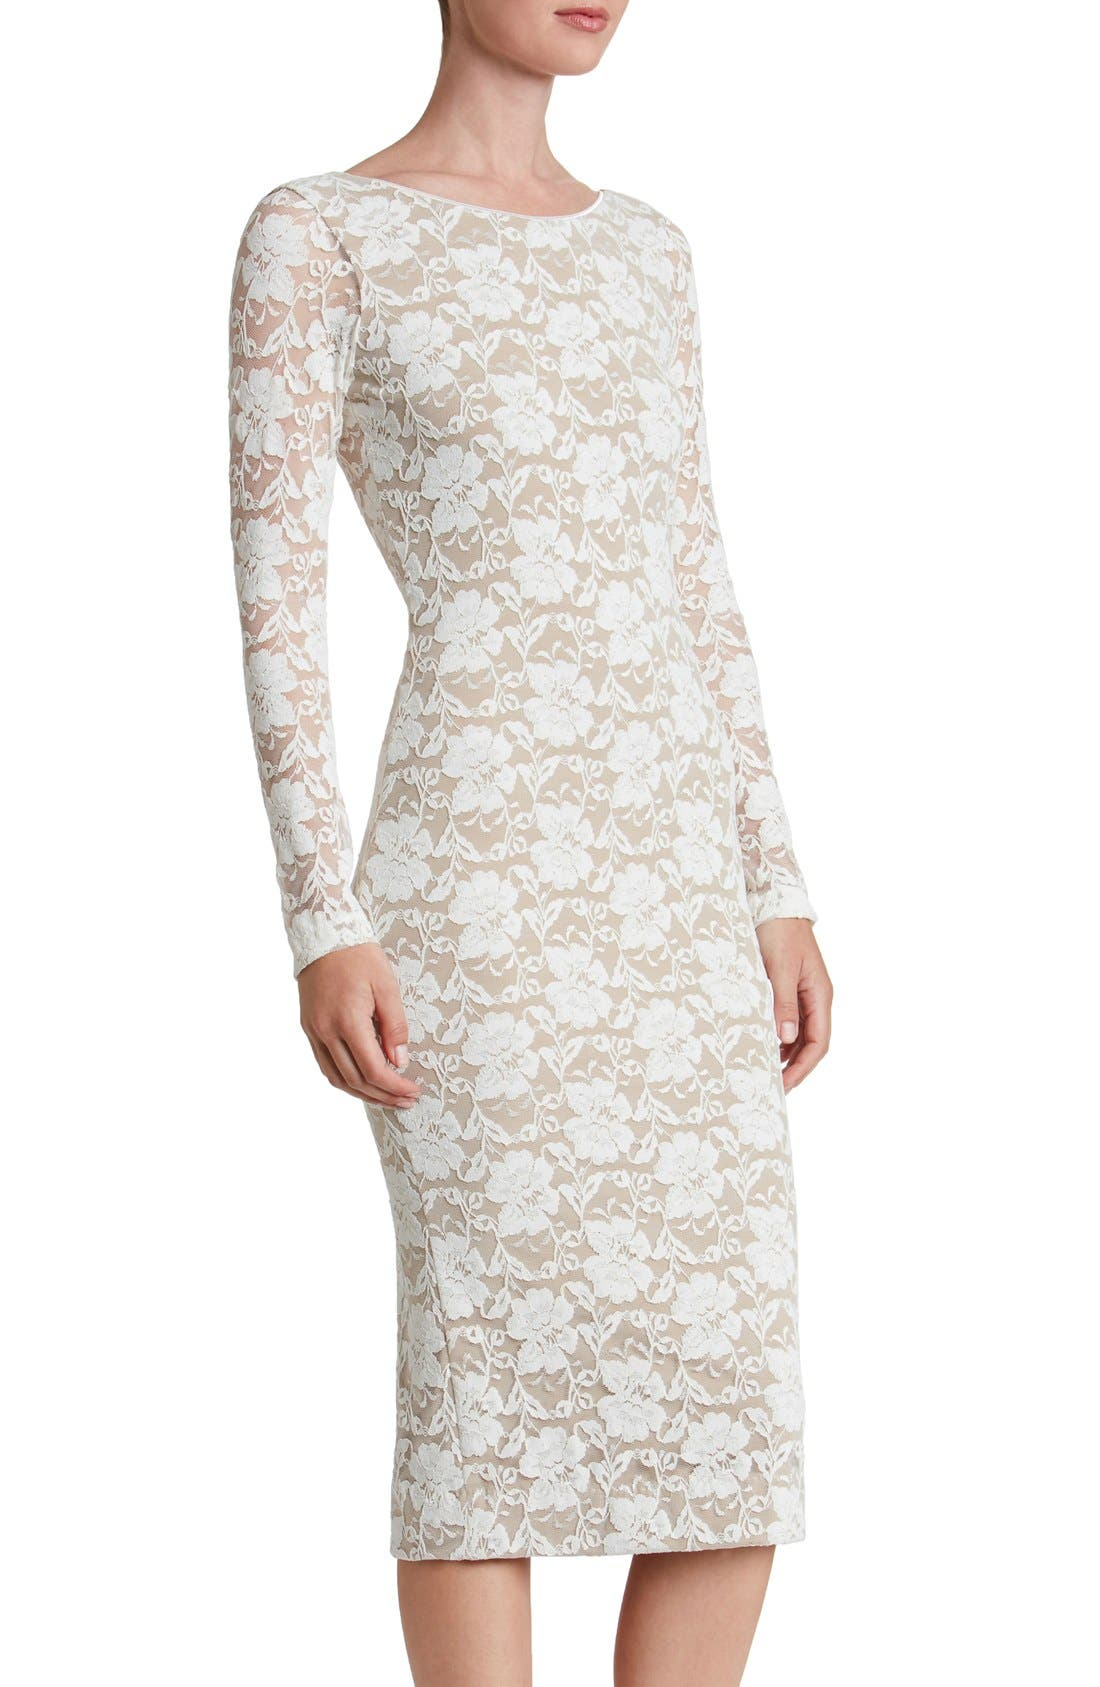 DRESS THE POPULATION Emery Lace Body-Con Midi Dress